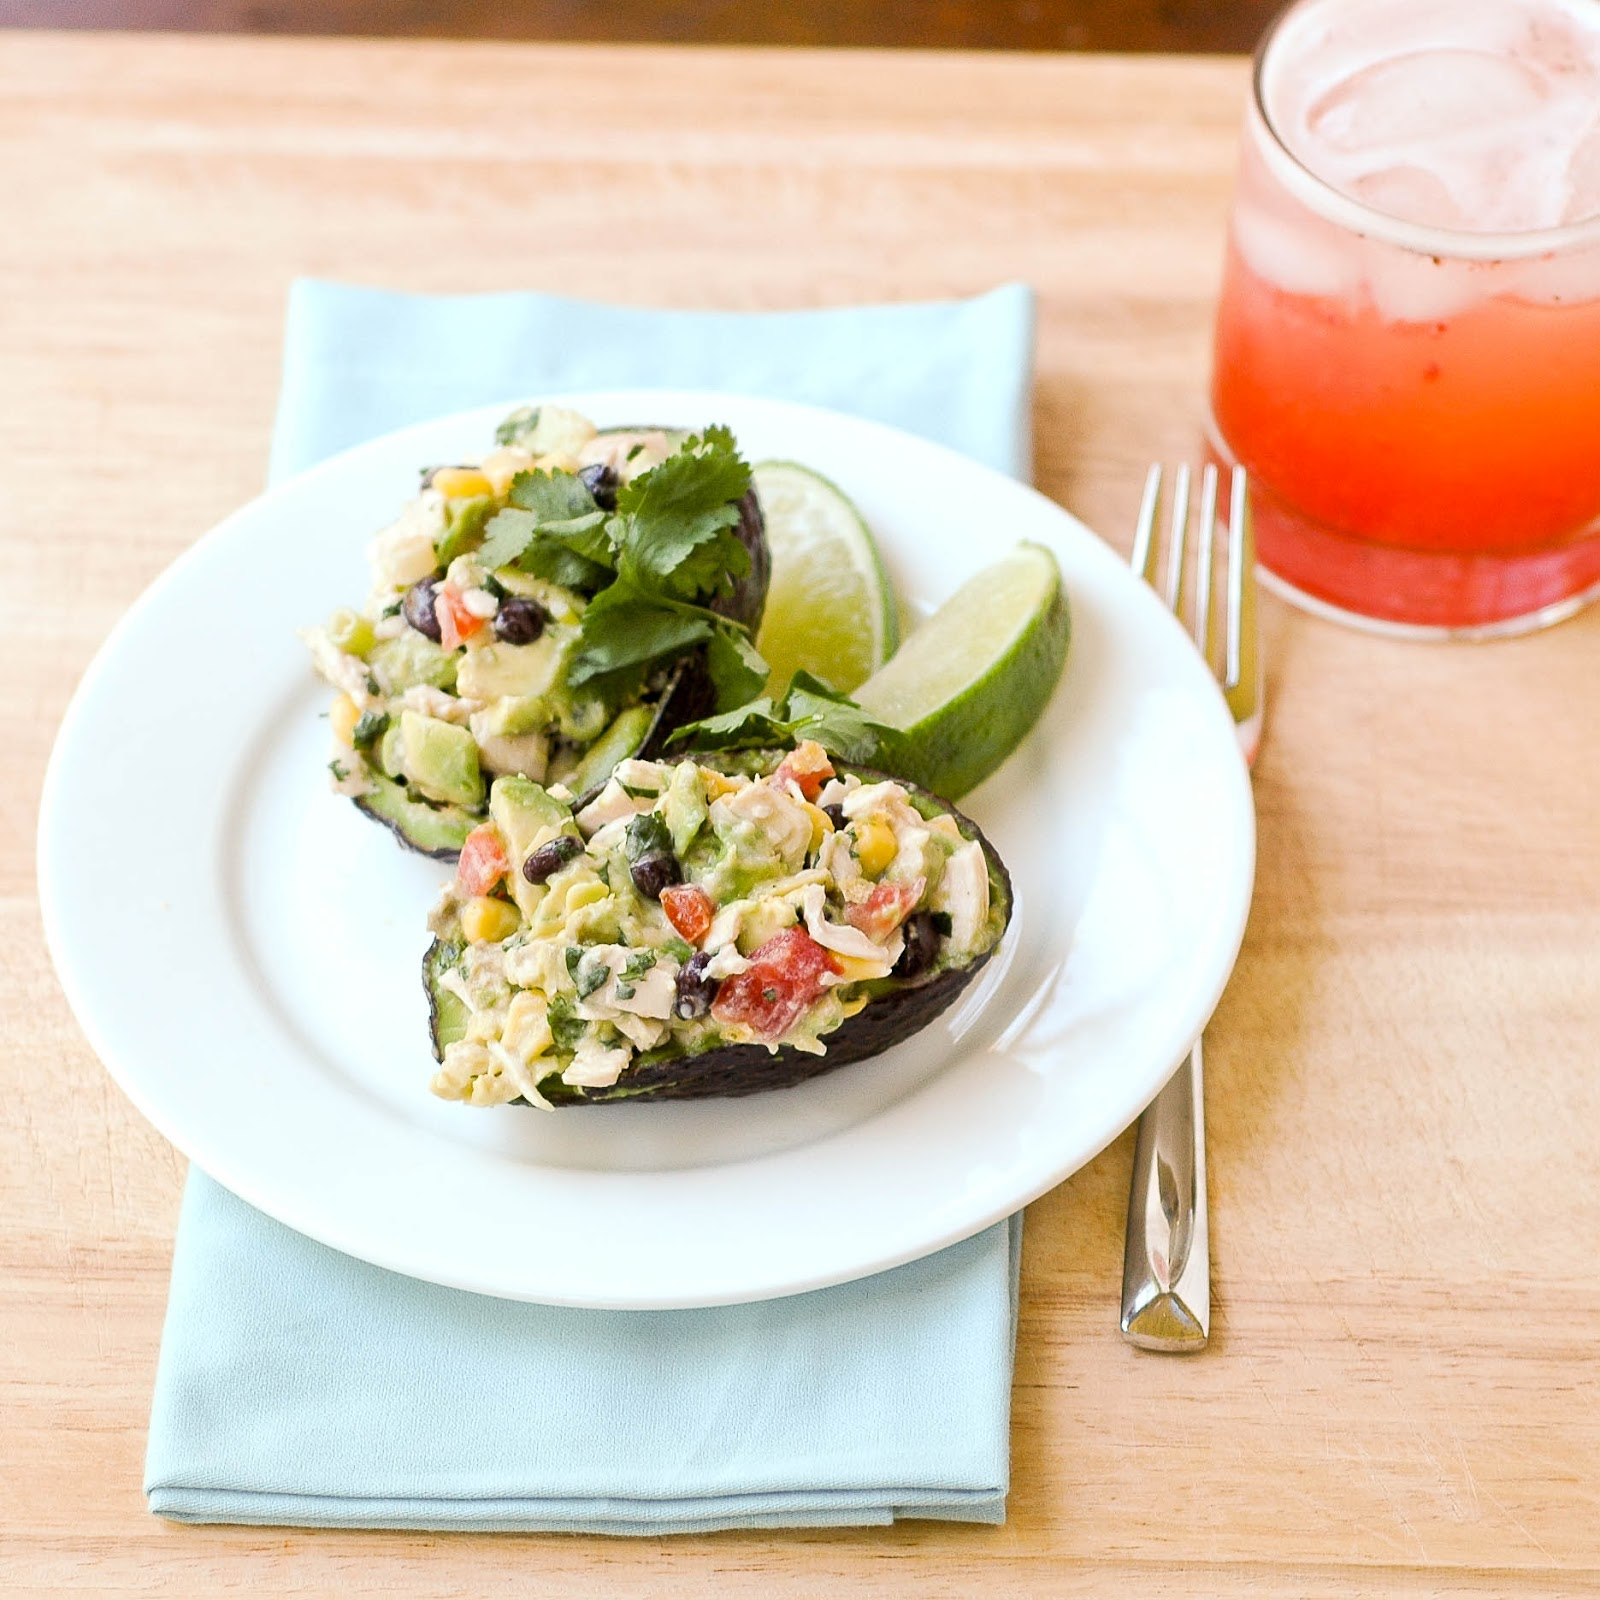 Good Thymes and Good Food: Southwest Avocado Chicken Salad